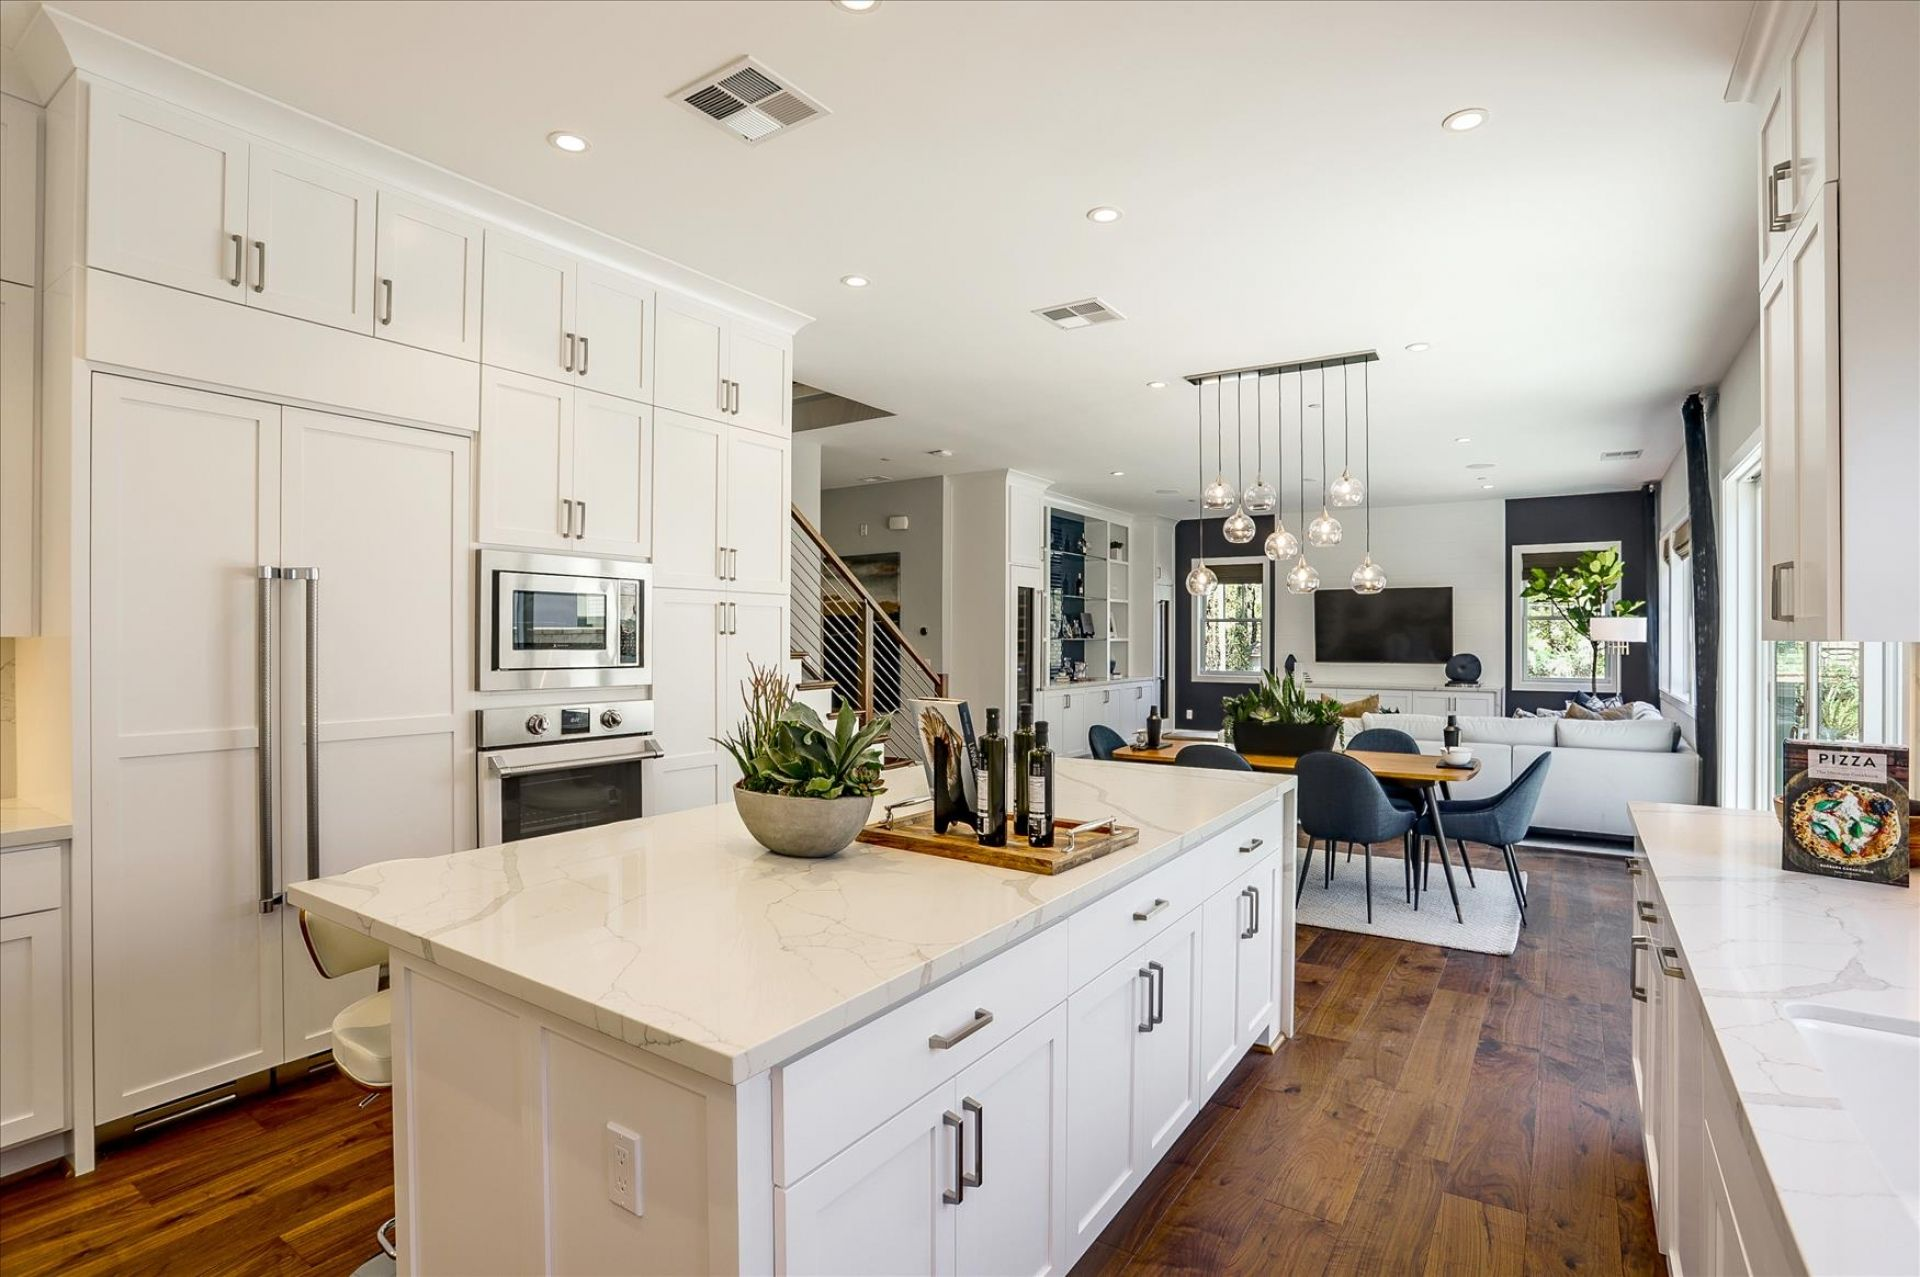 Kitchen featured in the 7C By SummerHill Homes in San Jose, CA